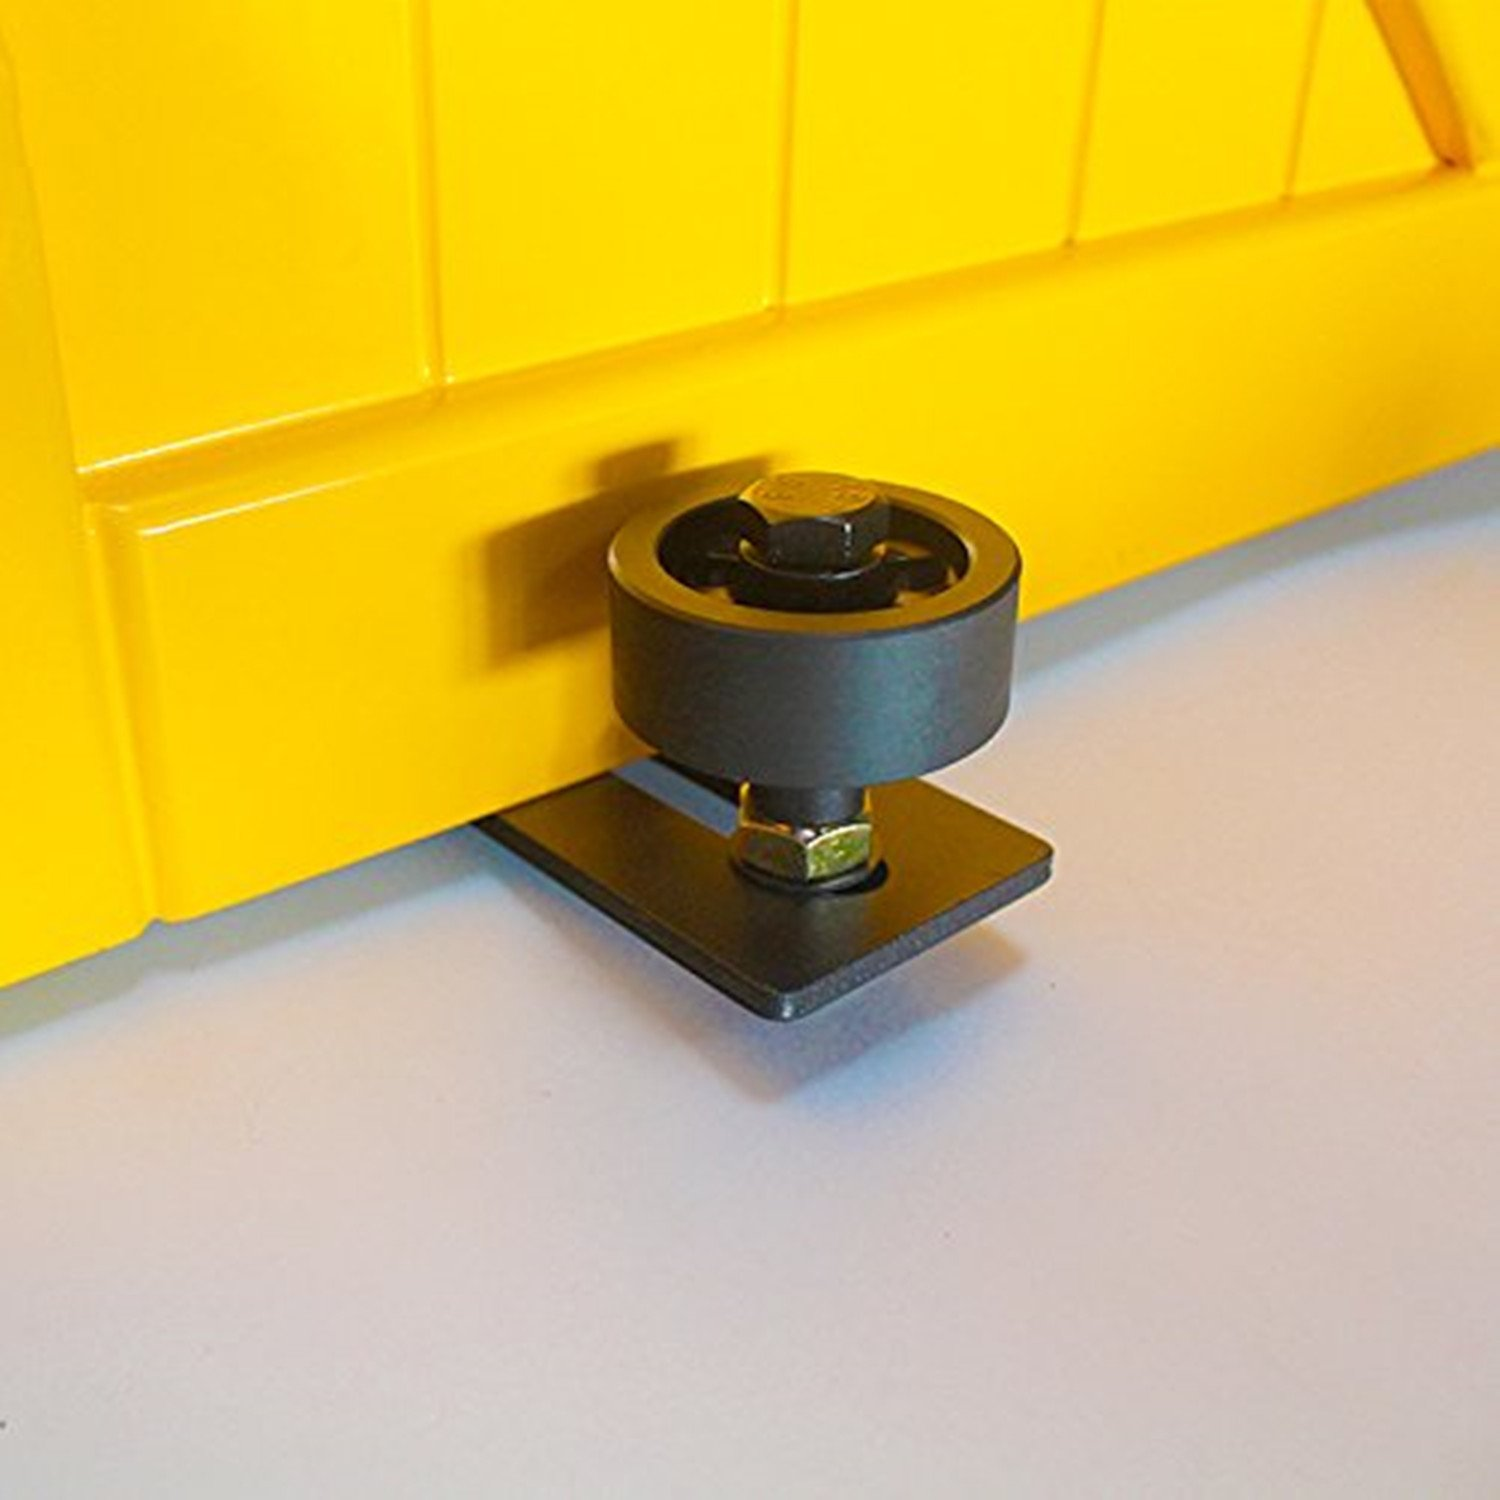 VANCLEEF Adjustable Single Wheel Floor Guide, Used for Sliding Barn Door, Wall Mounted, Made of Black Carbon Steel, Ensures Quiet and Smooth Sliding. by Vancleef Hardware (Image #3)